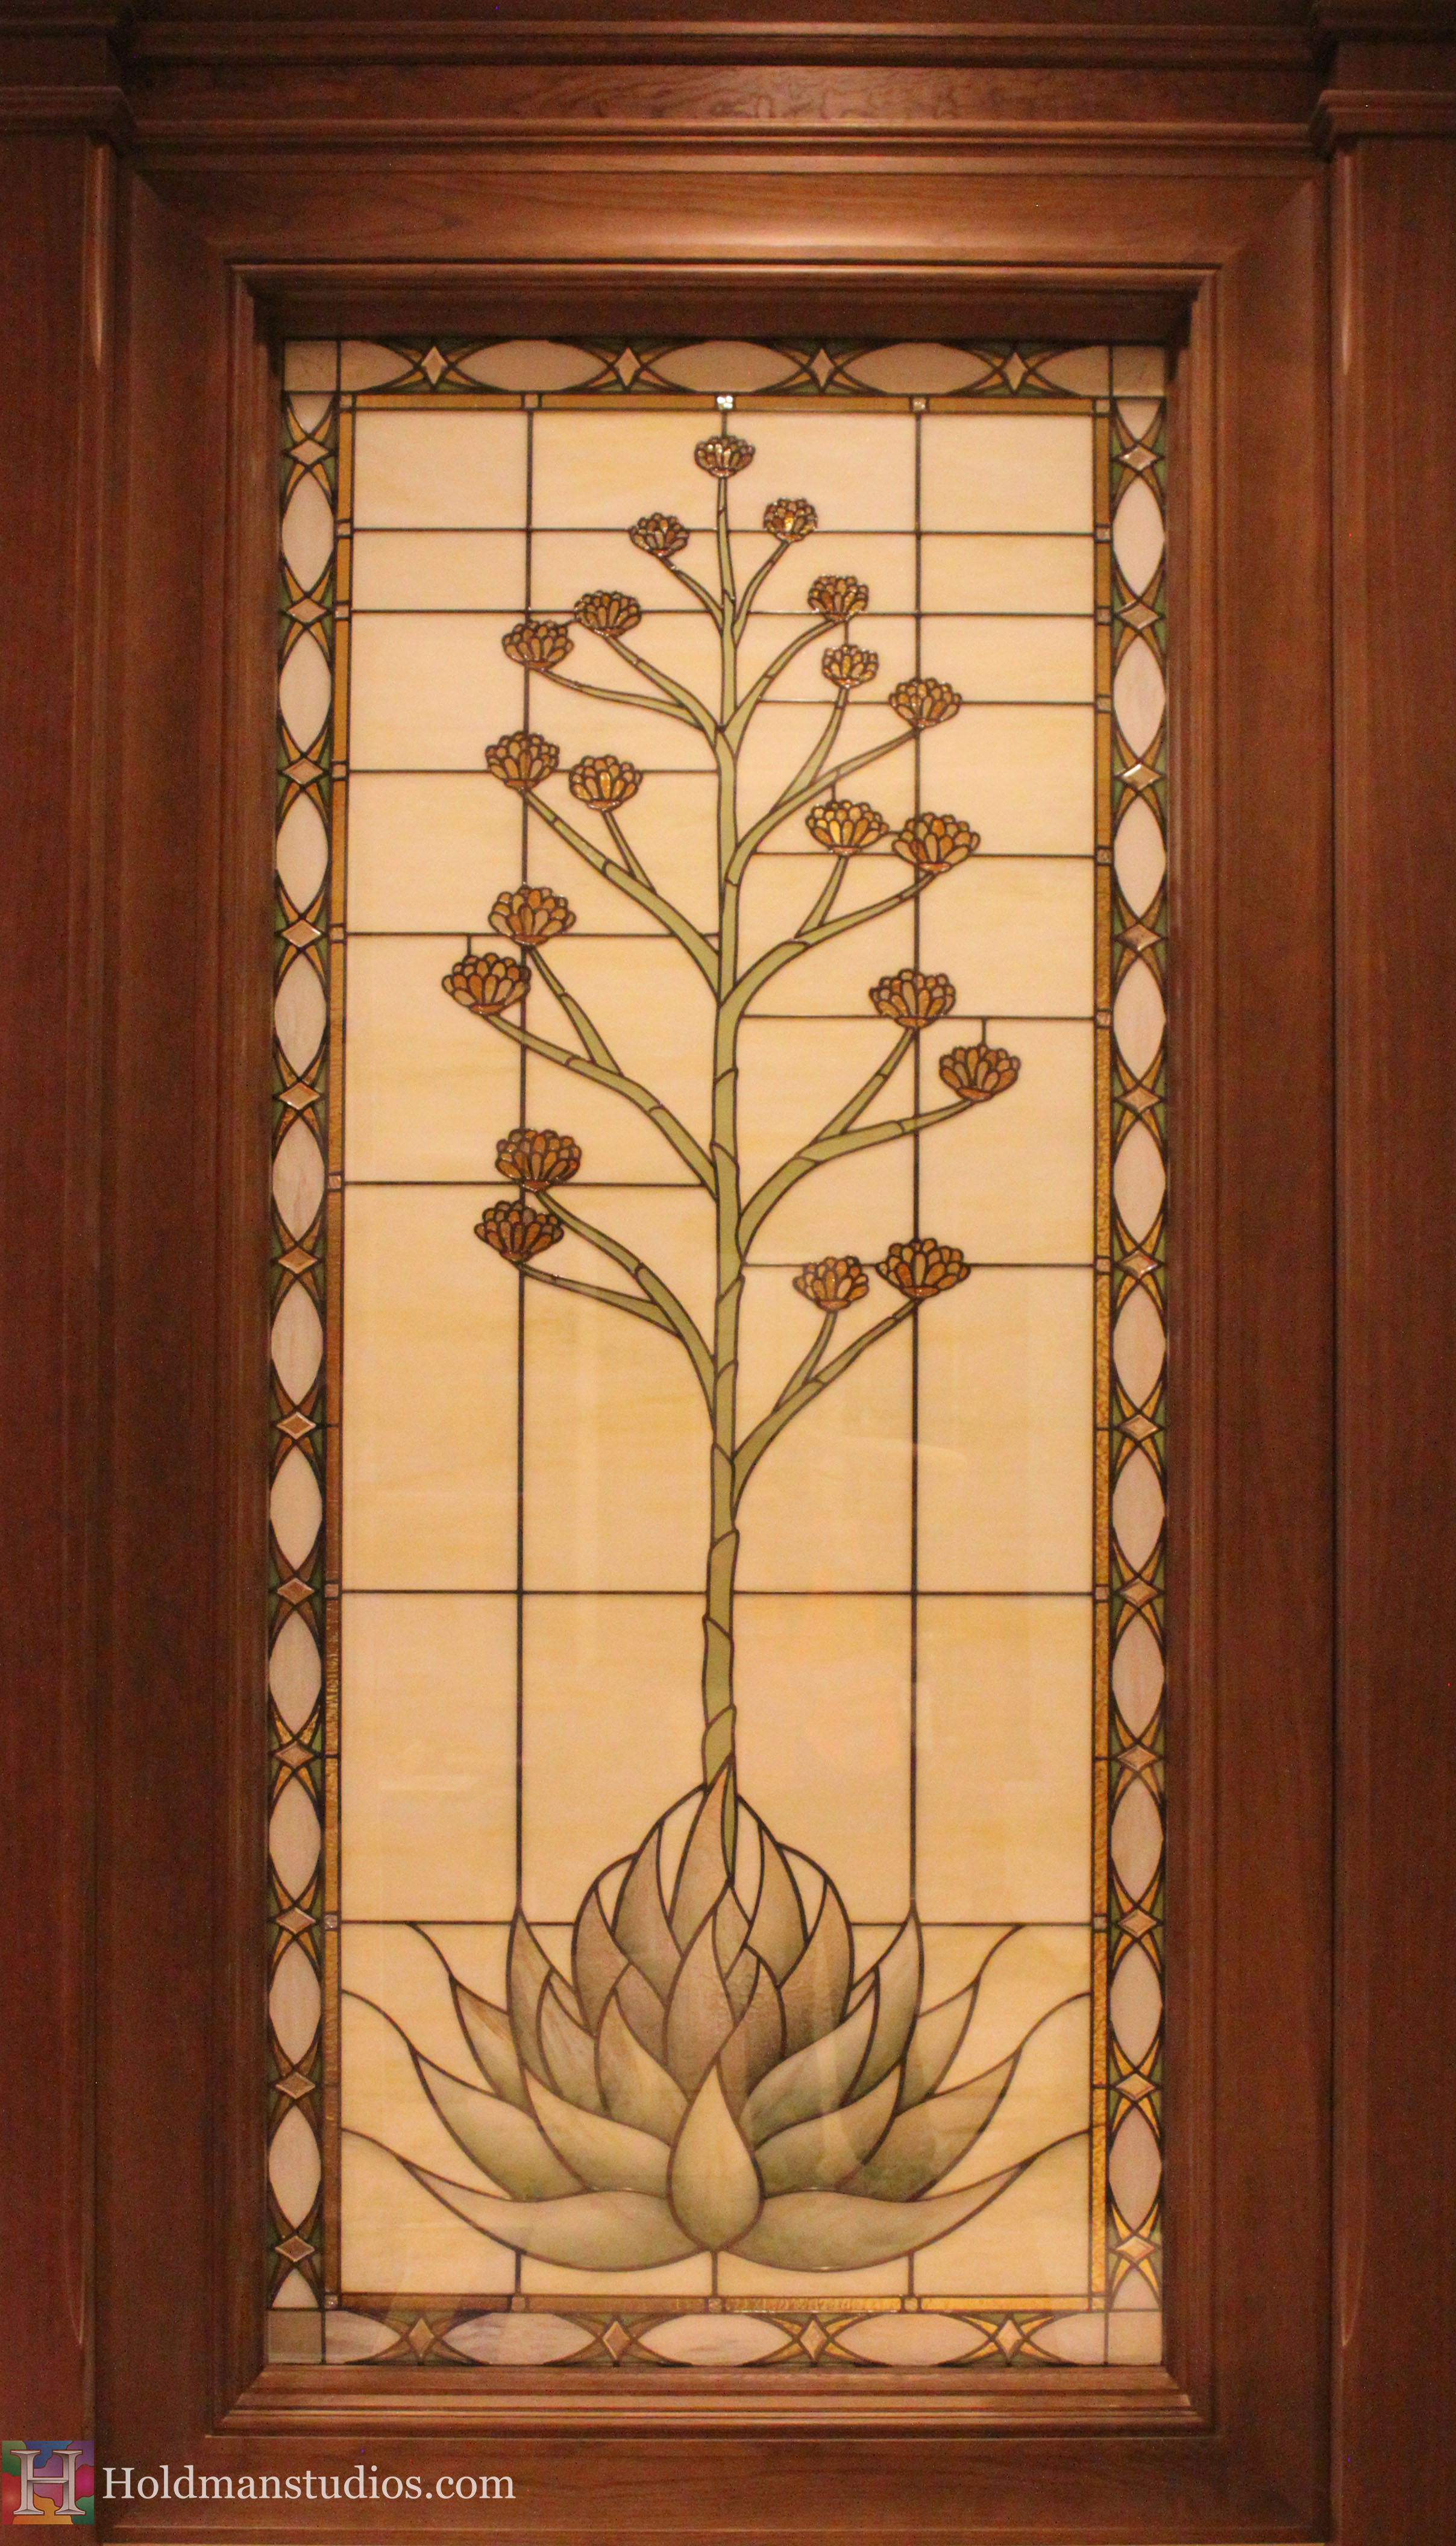 Holdman_Studios_Stained_Art_Glass_LDS_Mormon_Temple_Gilbert_Arizona_Agave_Plant_Flower_Closeup.jpg